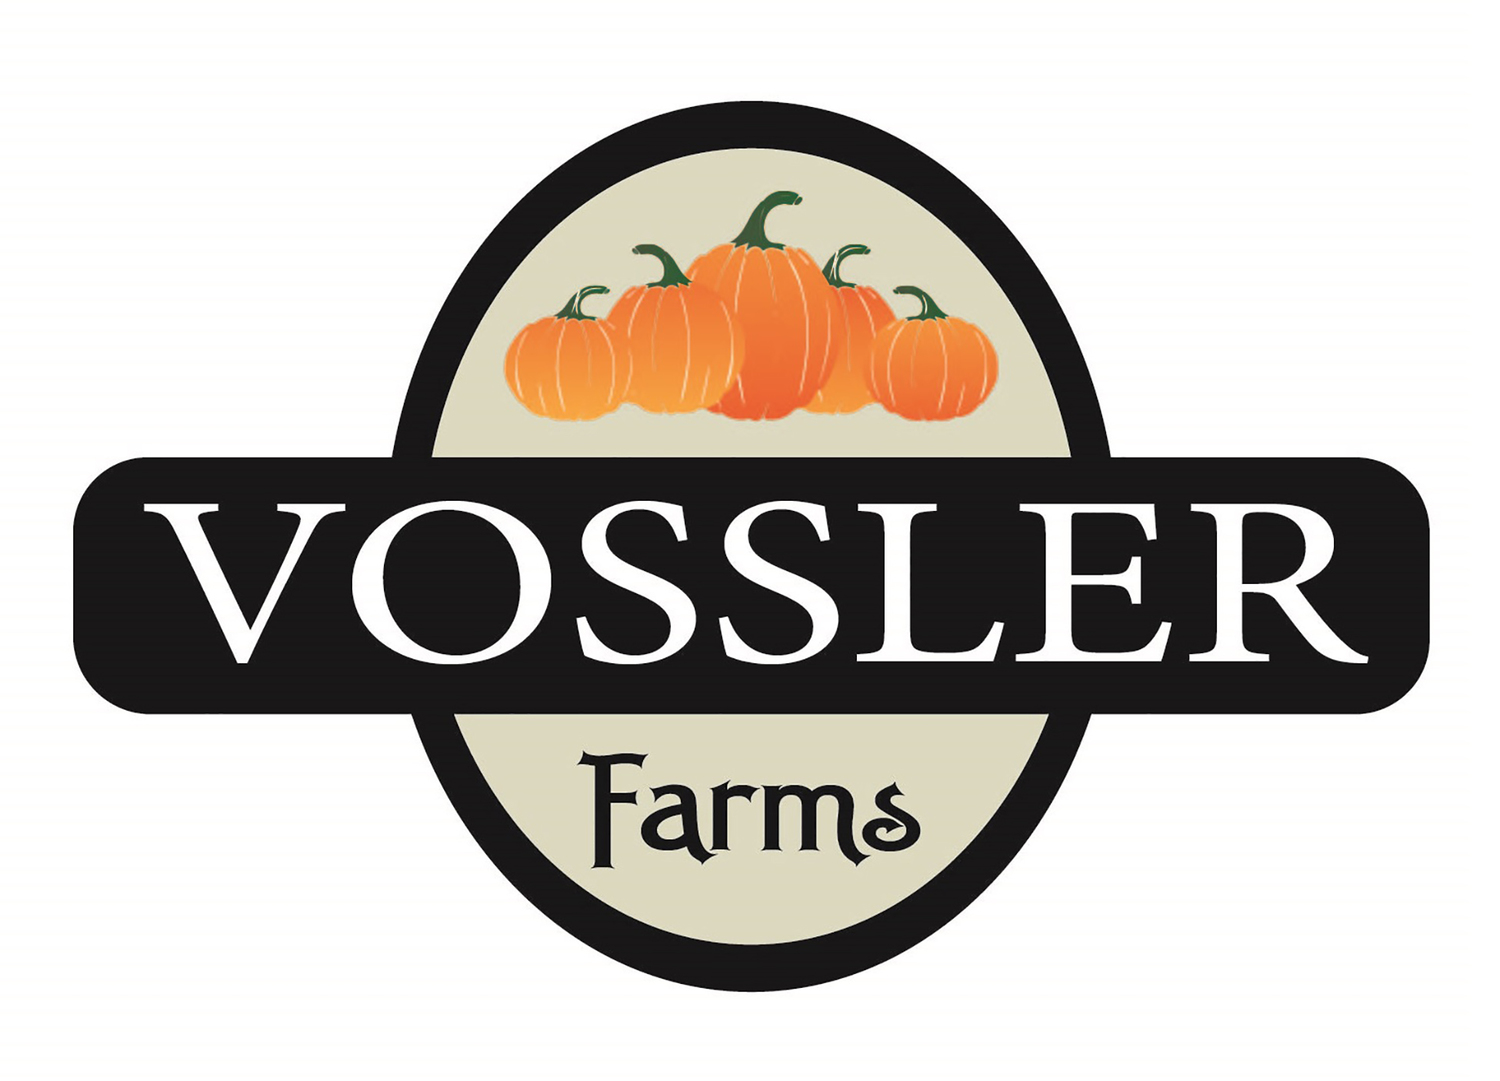 Vossler Farms